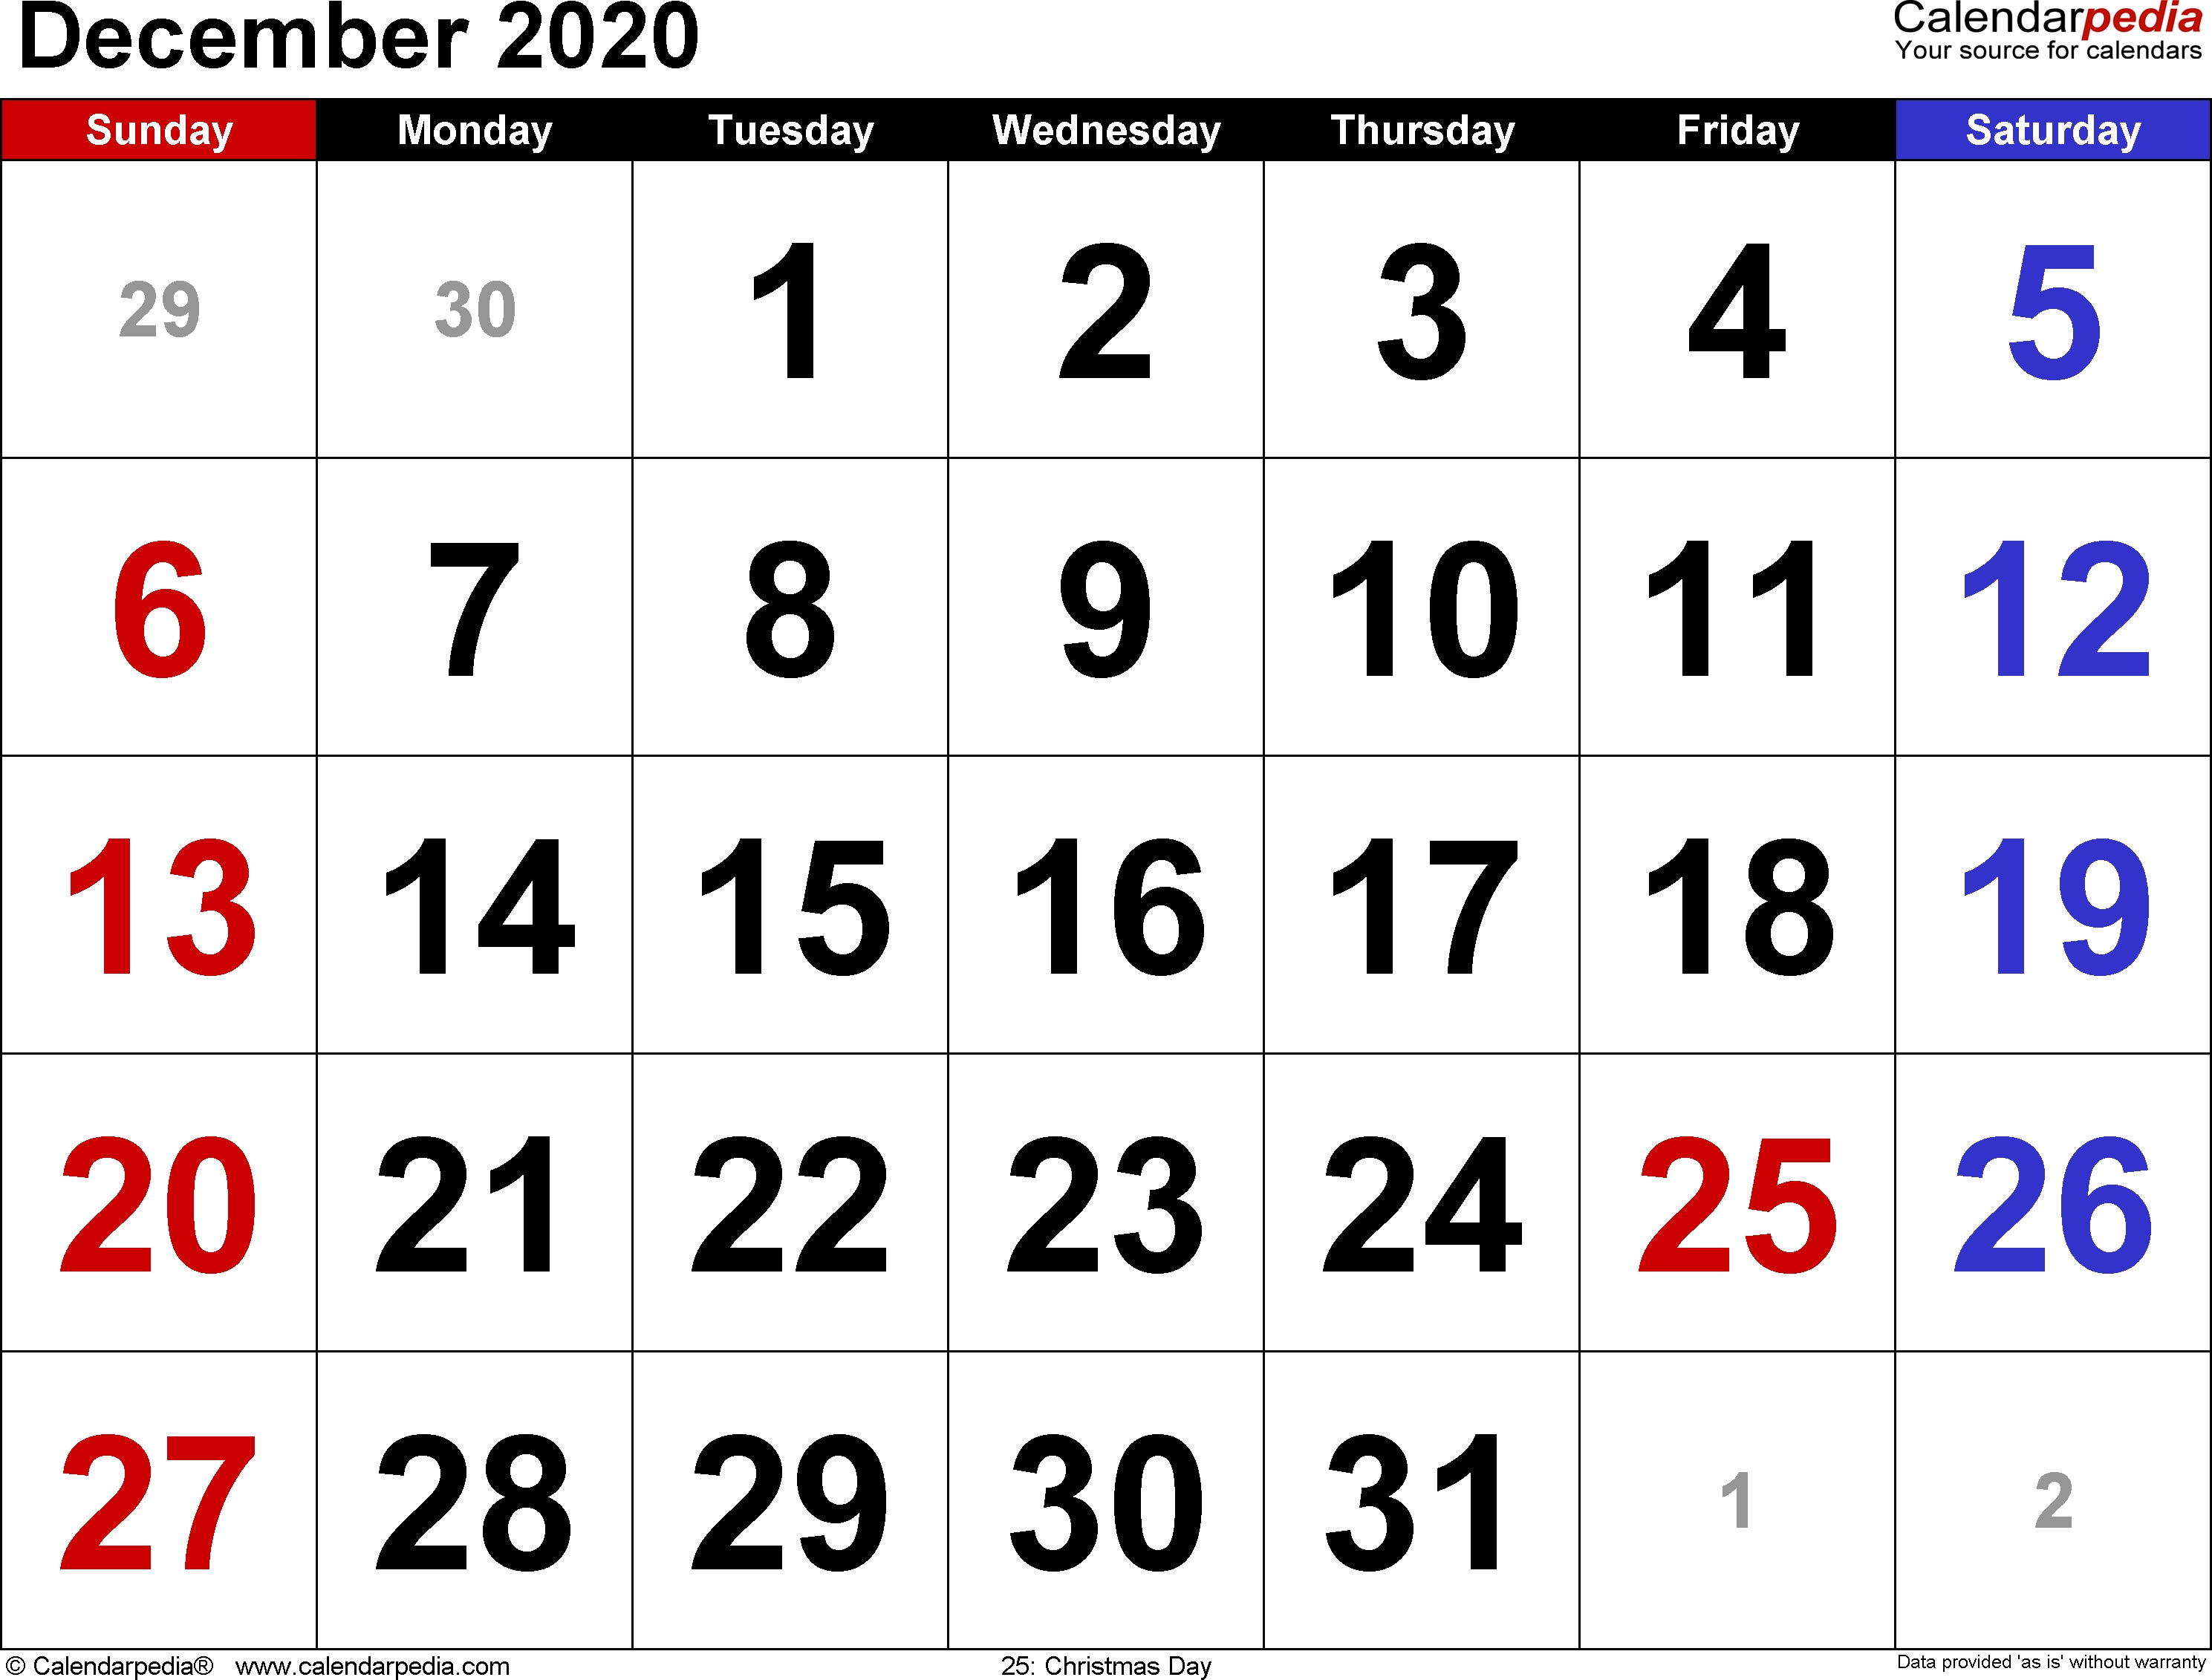 December 2020 Calendars For Word, Excel & Pdf Inside Monthly pertaining to Calendarpedia 2020 Excel